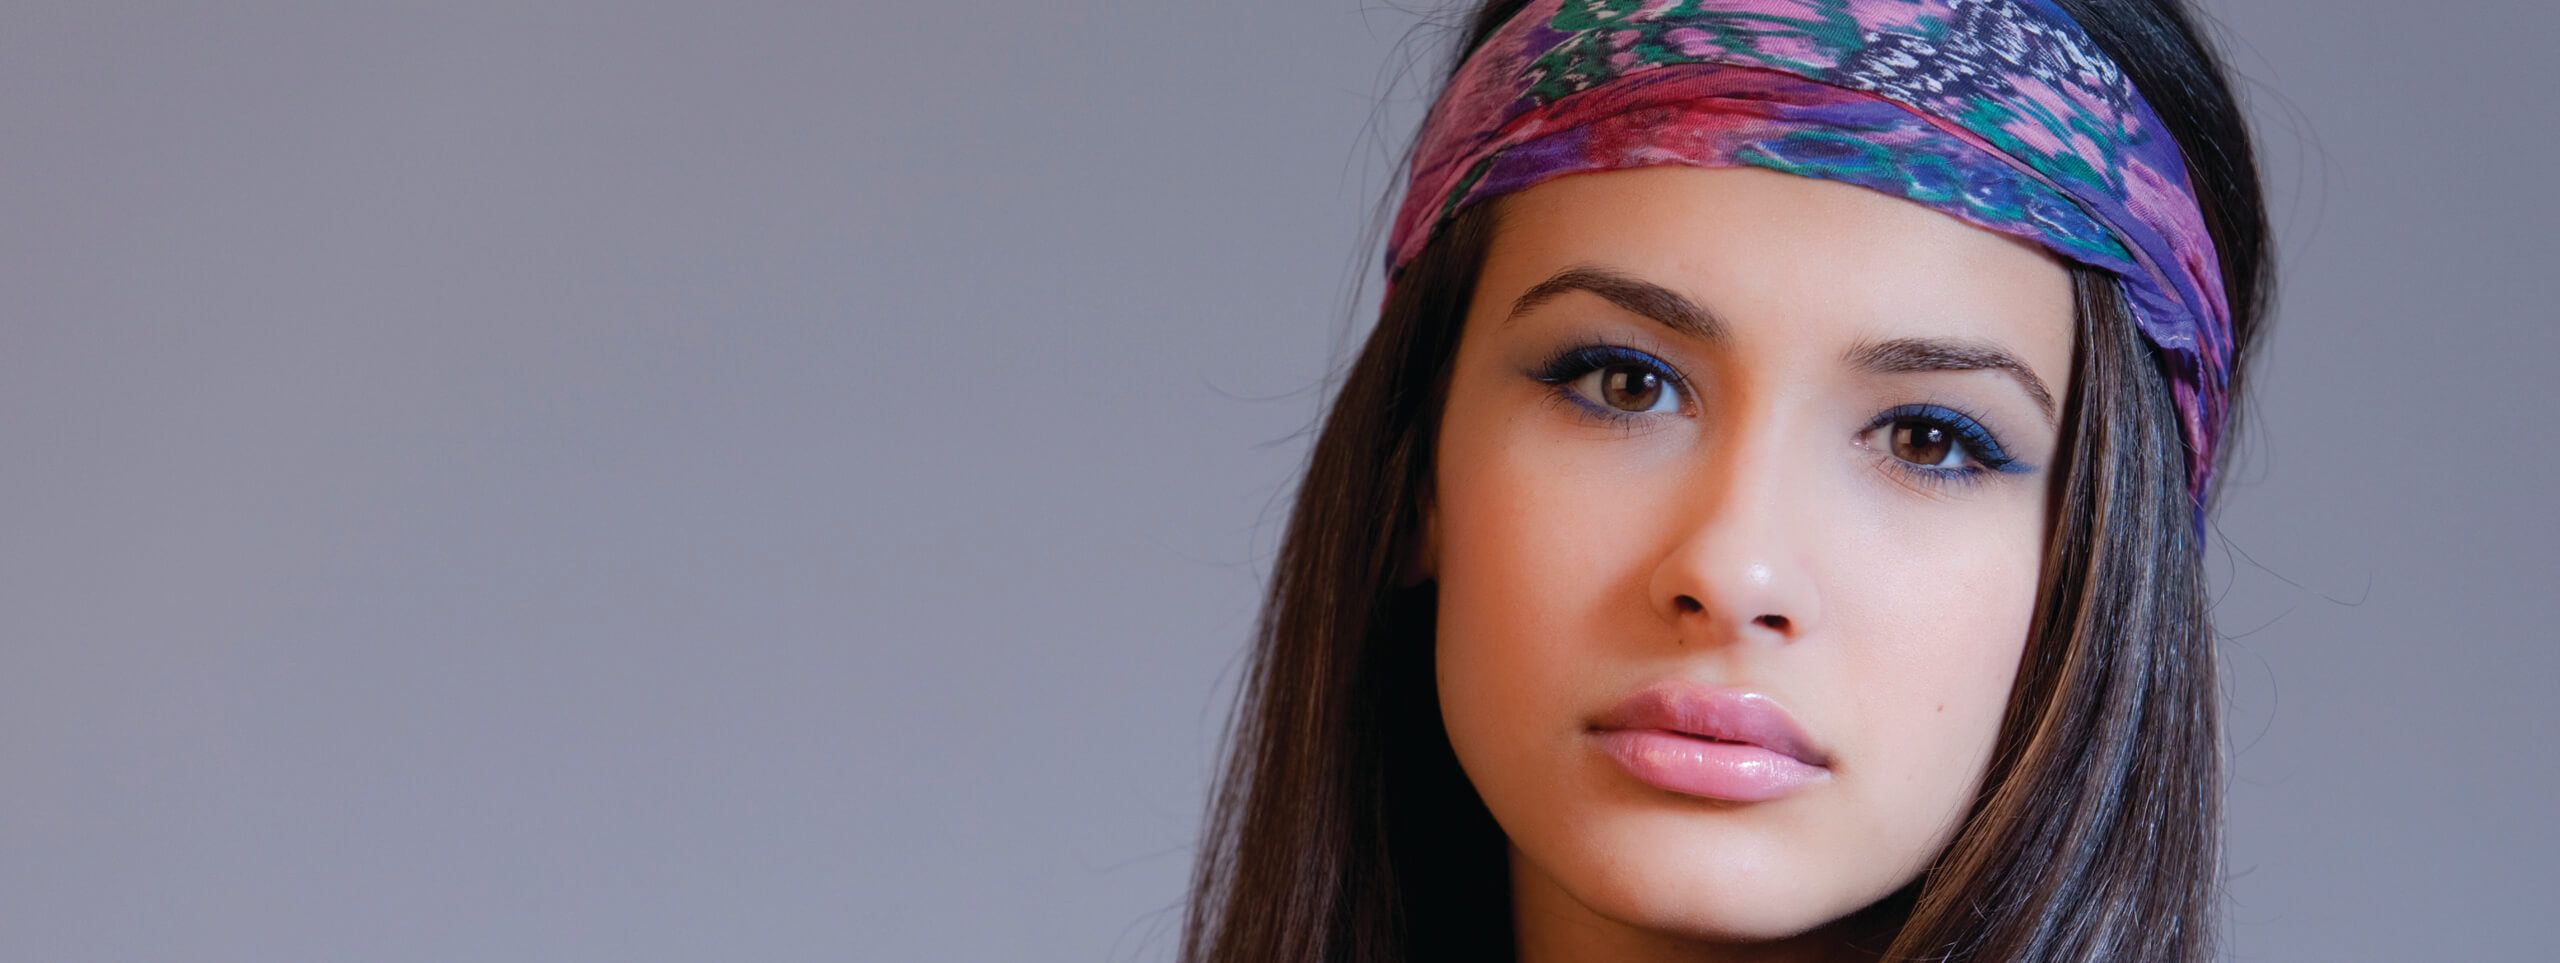 Woman with a very long hairstyle wearing a bandana